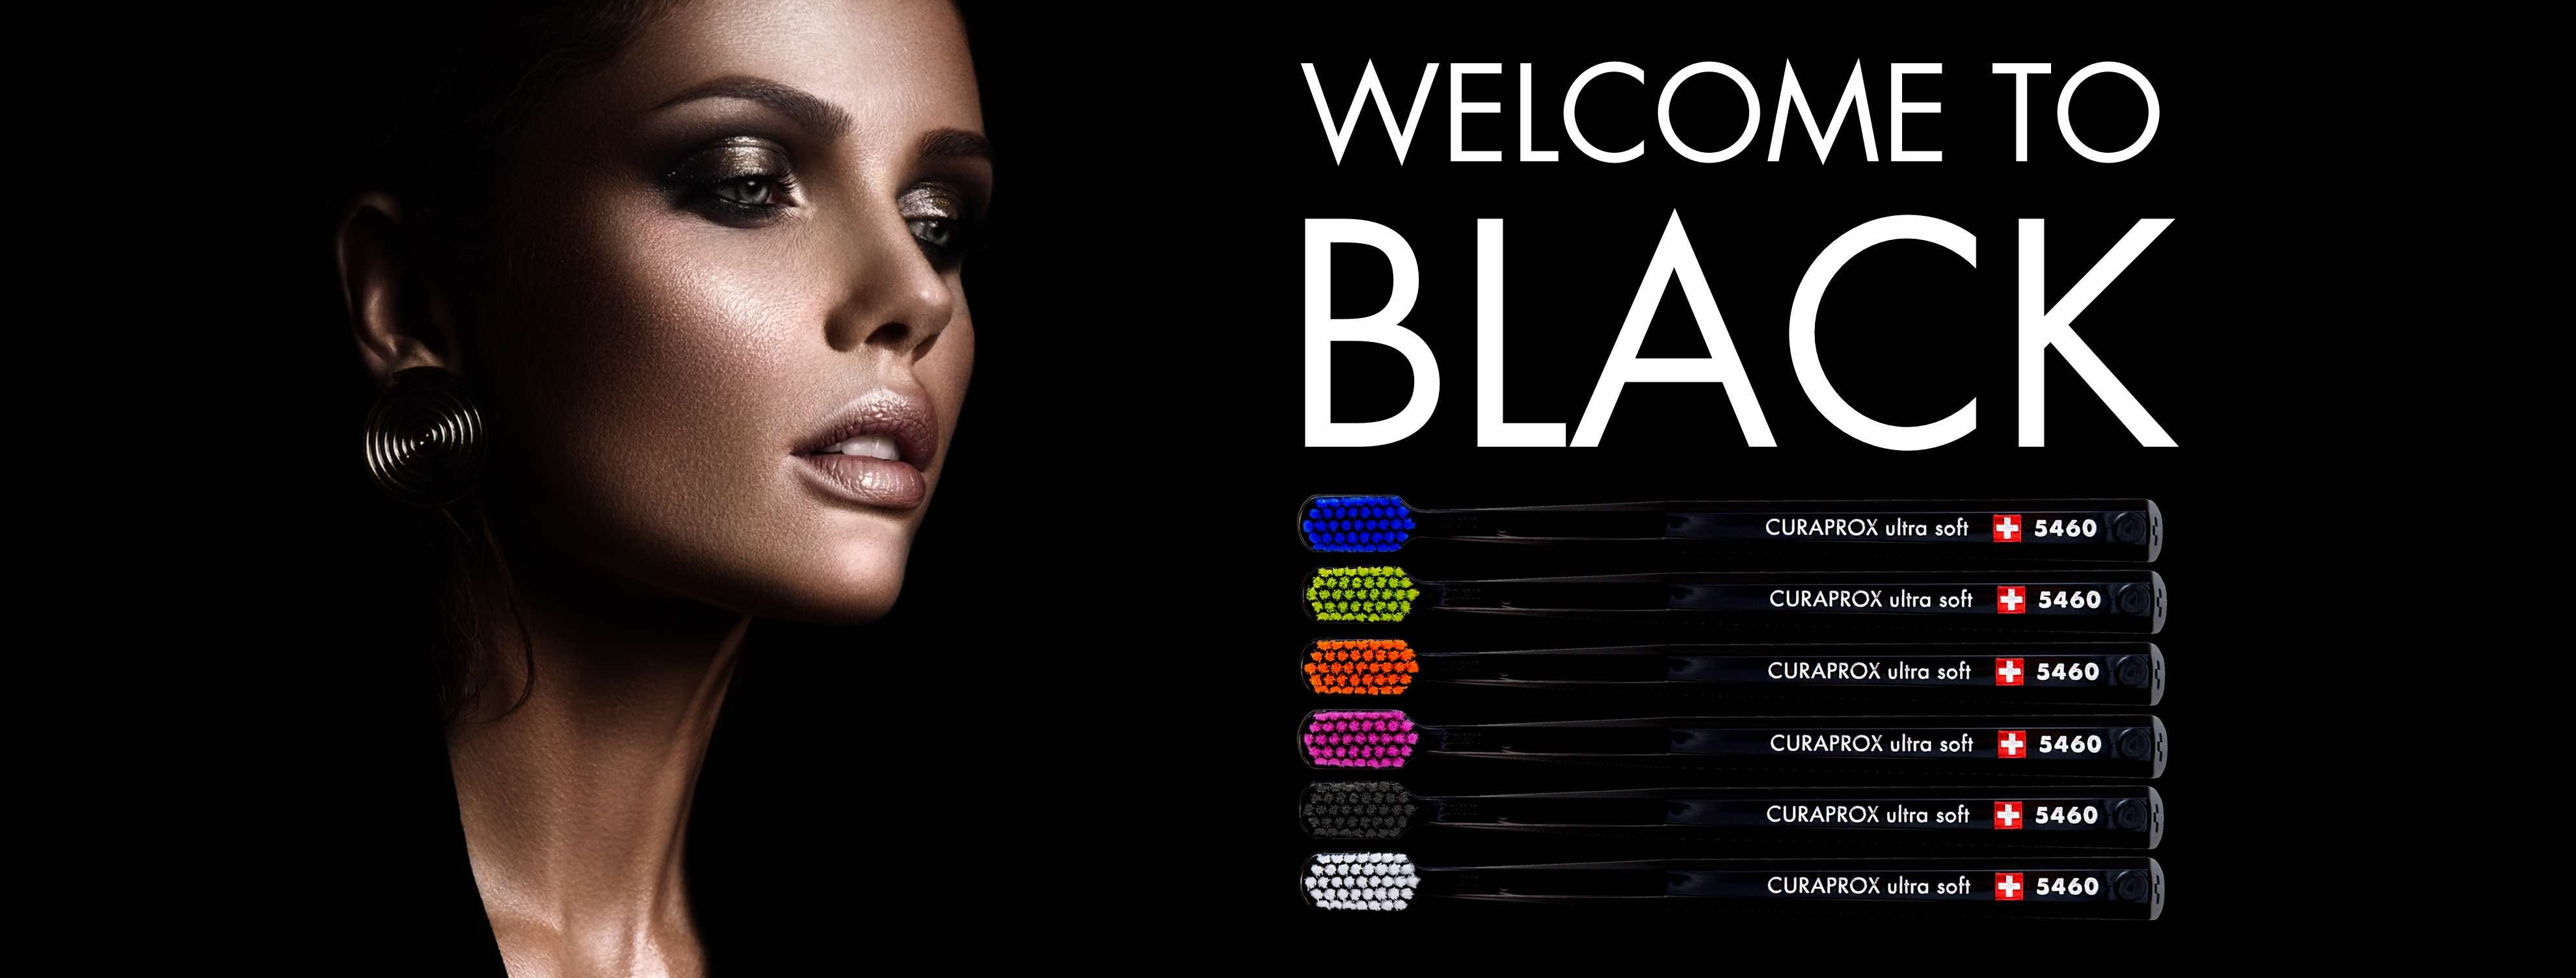 Welcome 2 Black